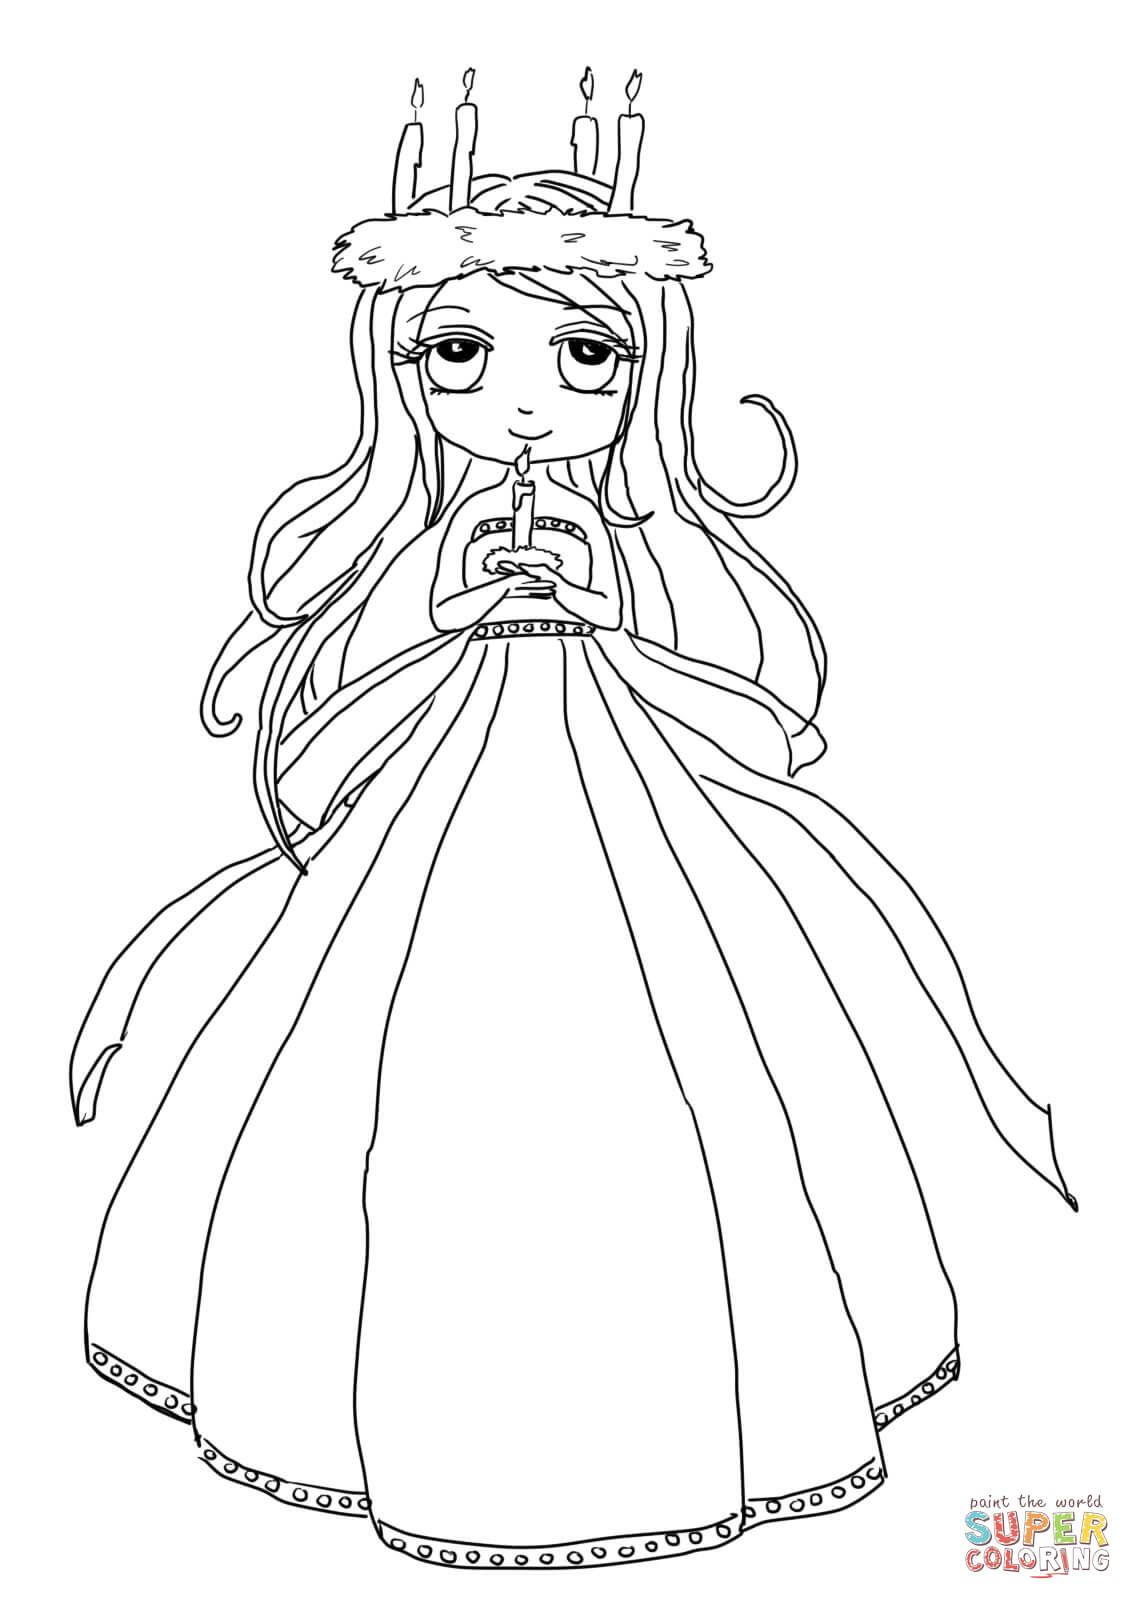 Cute St Lucia Girl Super Coloring Coloring Pages Free Coloring Pages Free Coloring